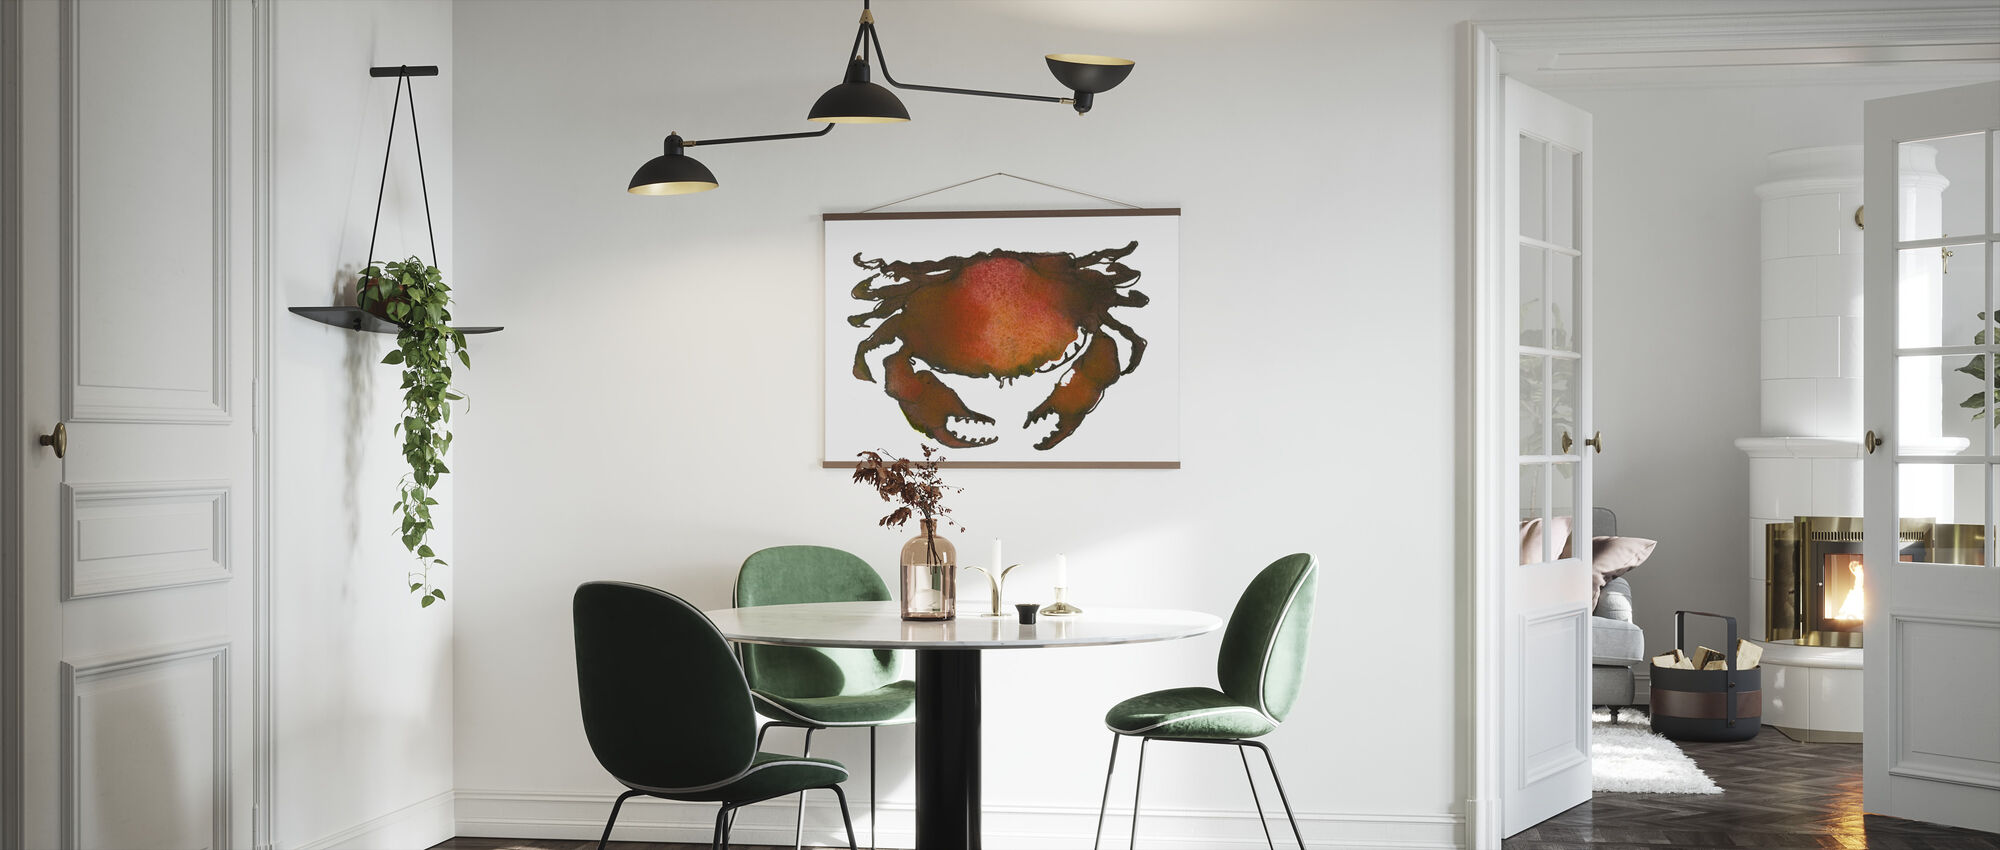 Crab - Poster - Kitchen